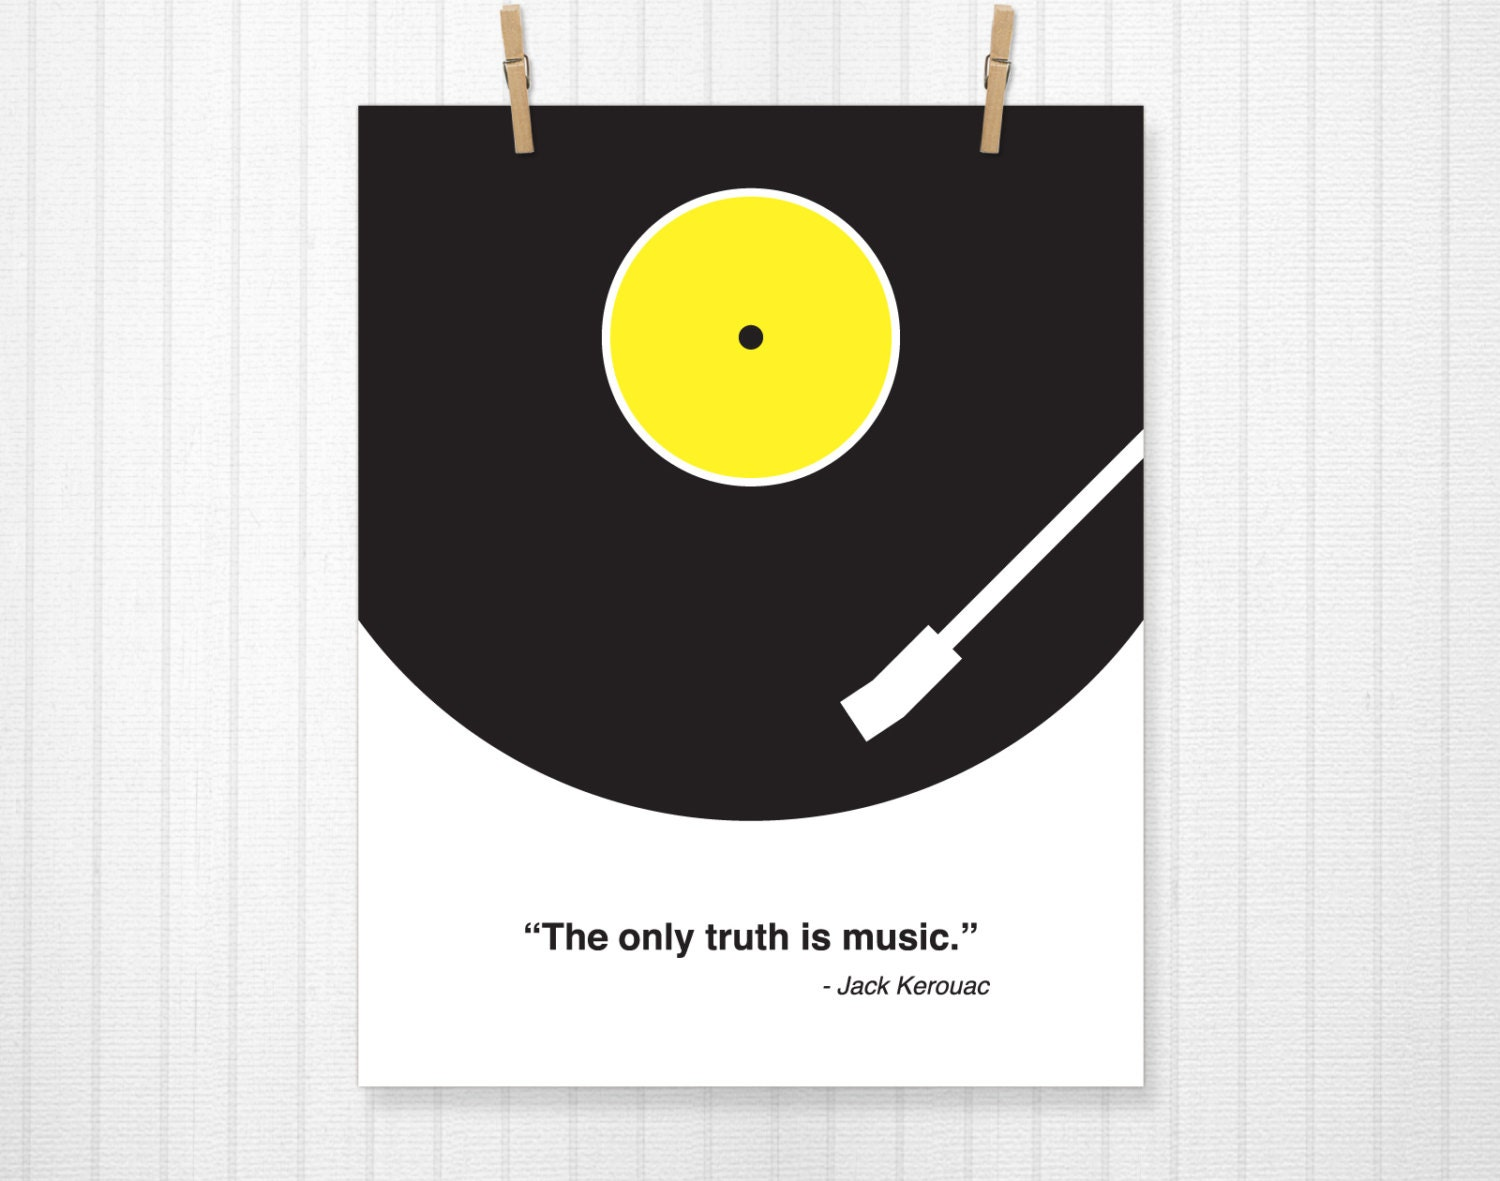 The only truth is music jack kerouac jack kerouac quote for Music minimal art